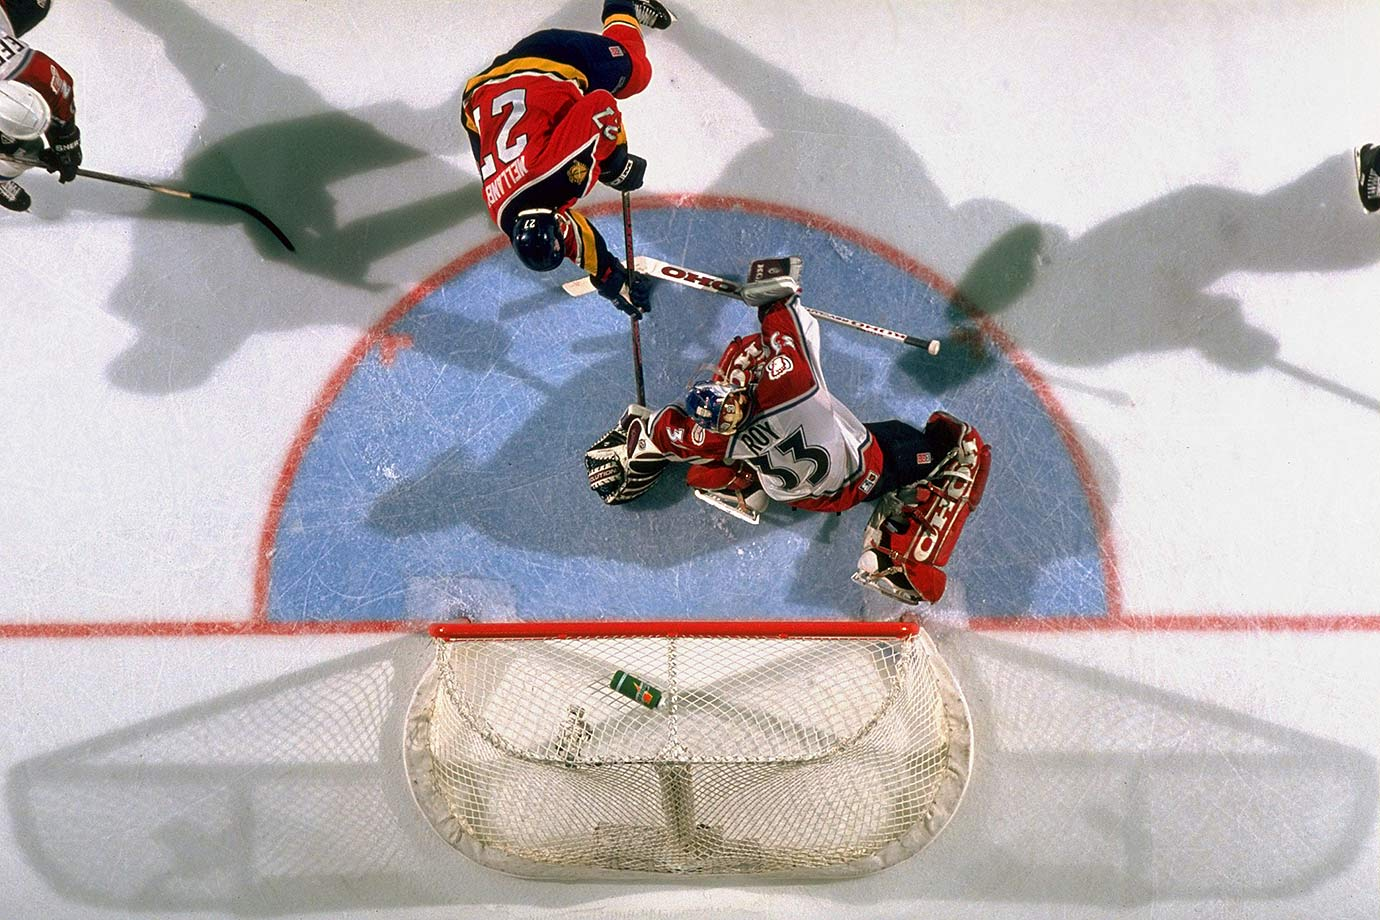 June 4, 1996 — Stanley Cup Final, Game 1 (Avalanche vs. Panthers)